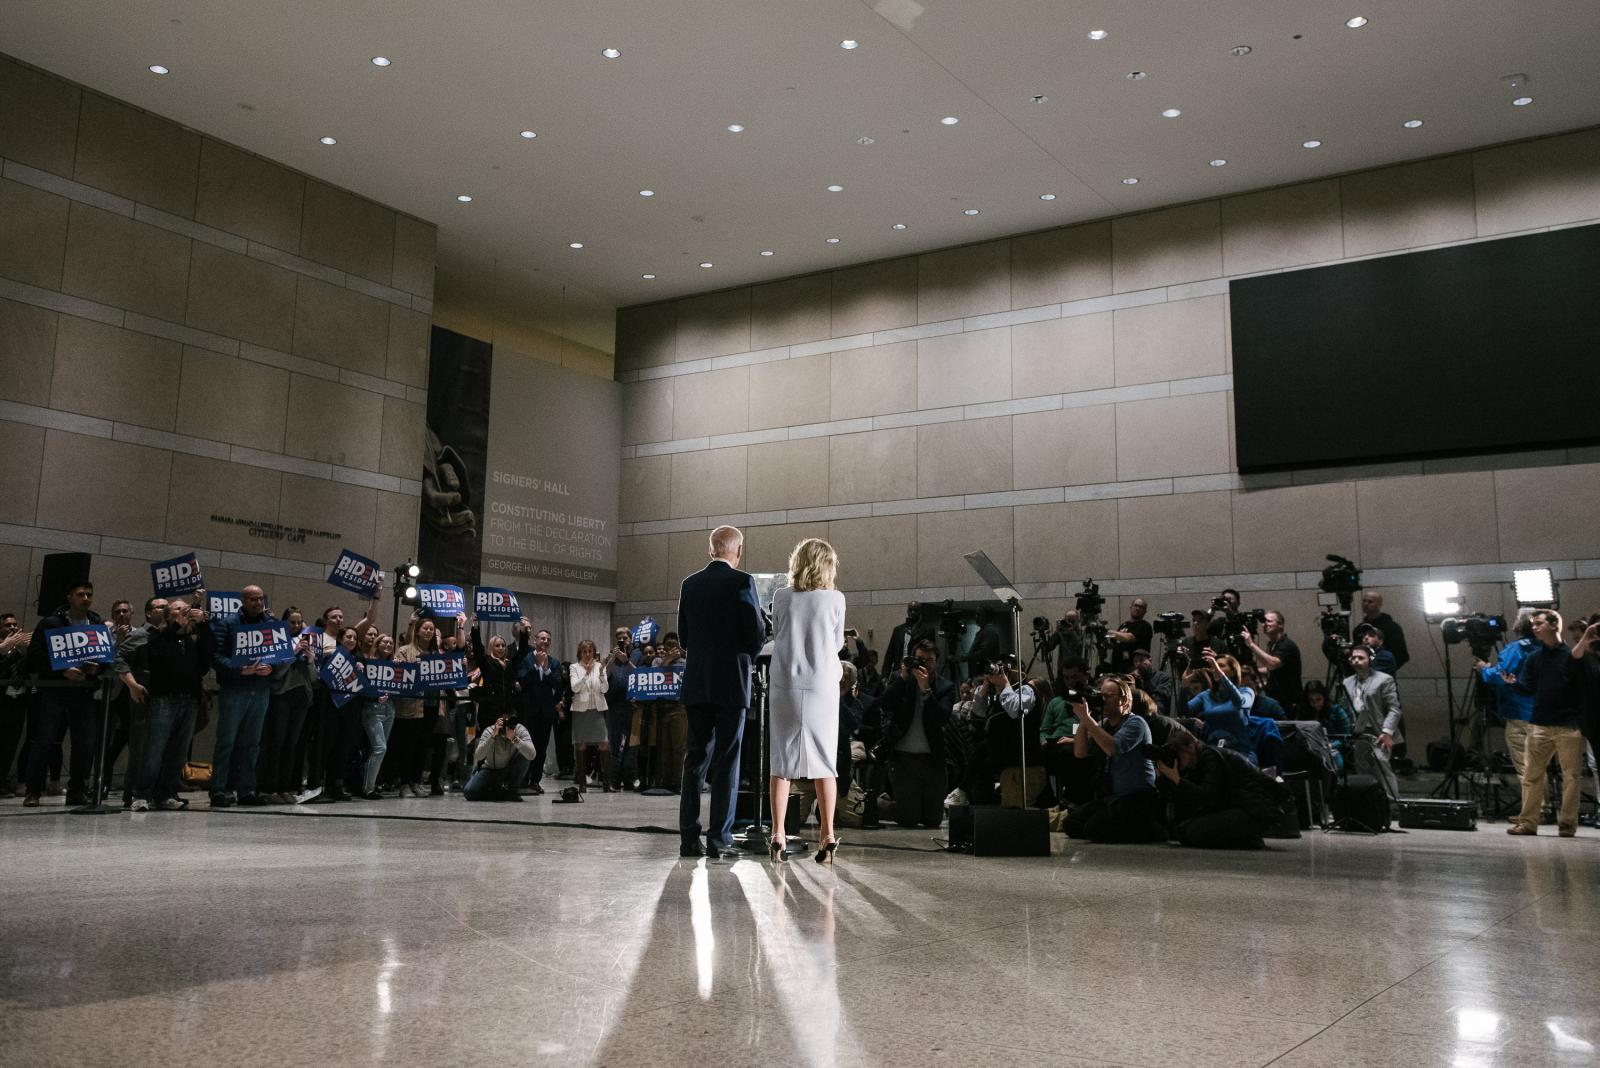 Former Vice President Joseph R. Biden Jr. speaks at the National Constitution Center in Philadelphia, PA on Tuesday, March 10, 2020. Biden and Senator Bernie Sanders both cancelled their Cleveland, Ohio rallies because of concerns about the coronavirus. Hannah Yoon NYTPRIMARY